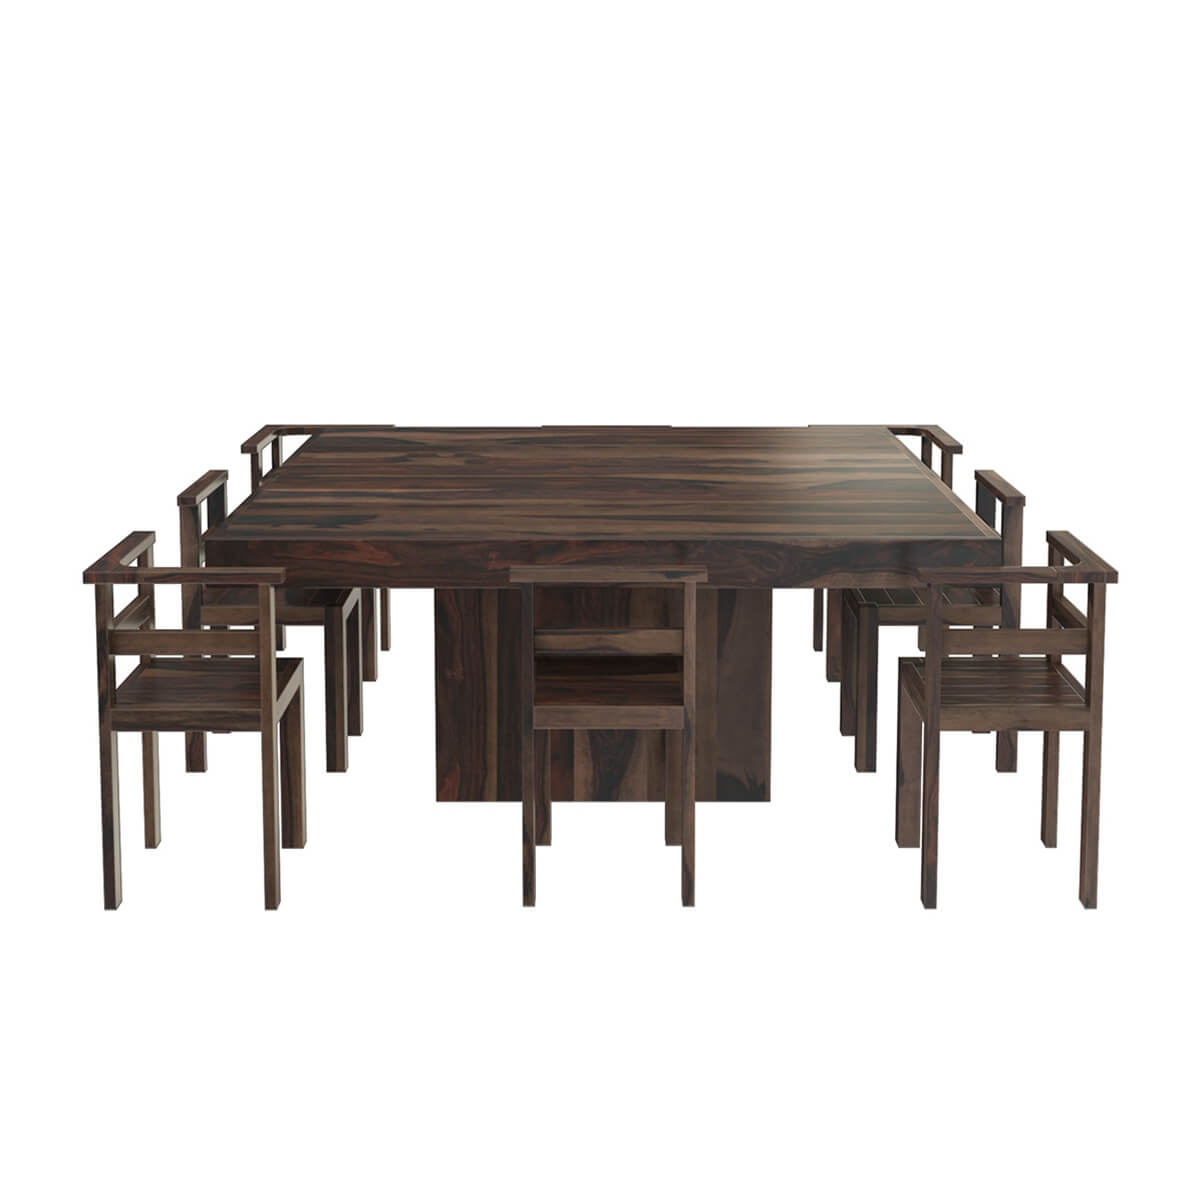 Modern rustic solid wood 64 square pedestal dining table for Square dining table for 8